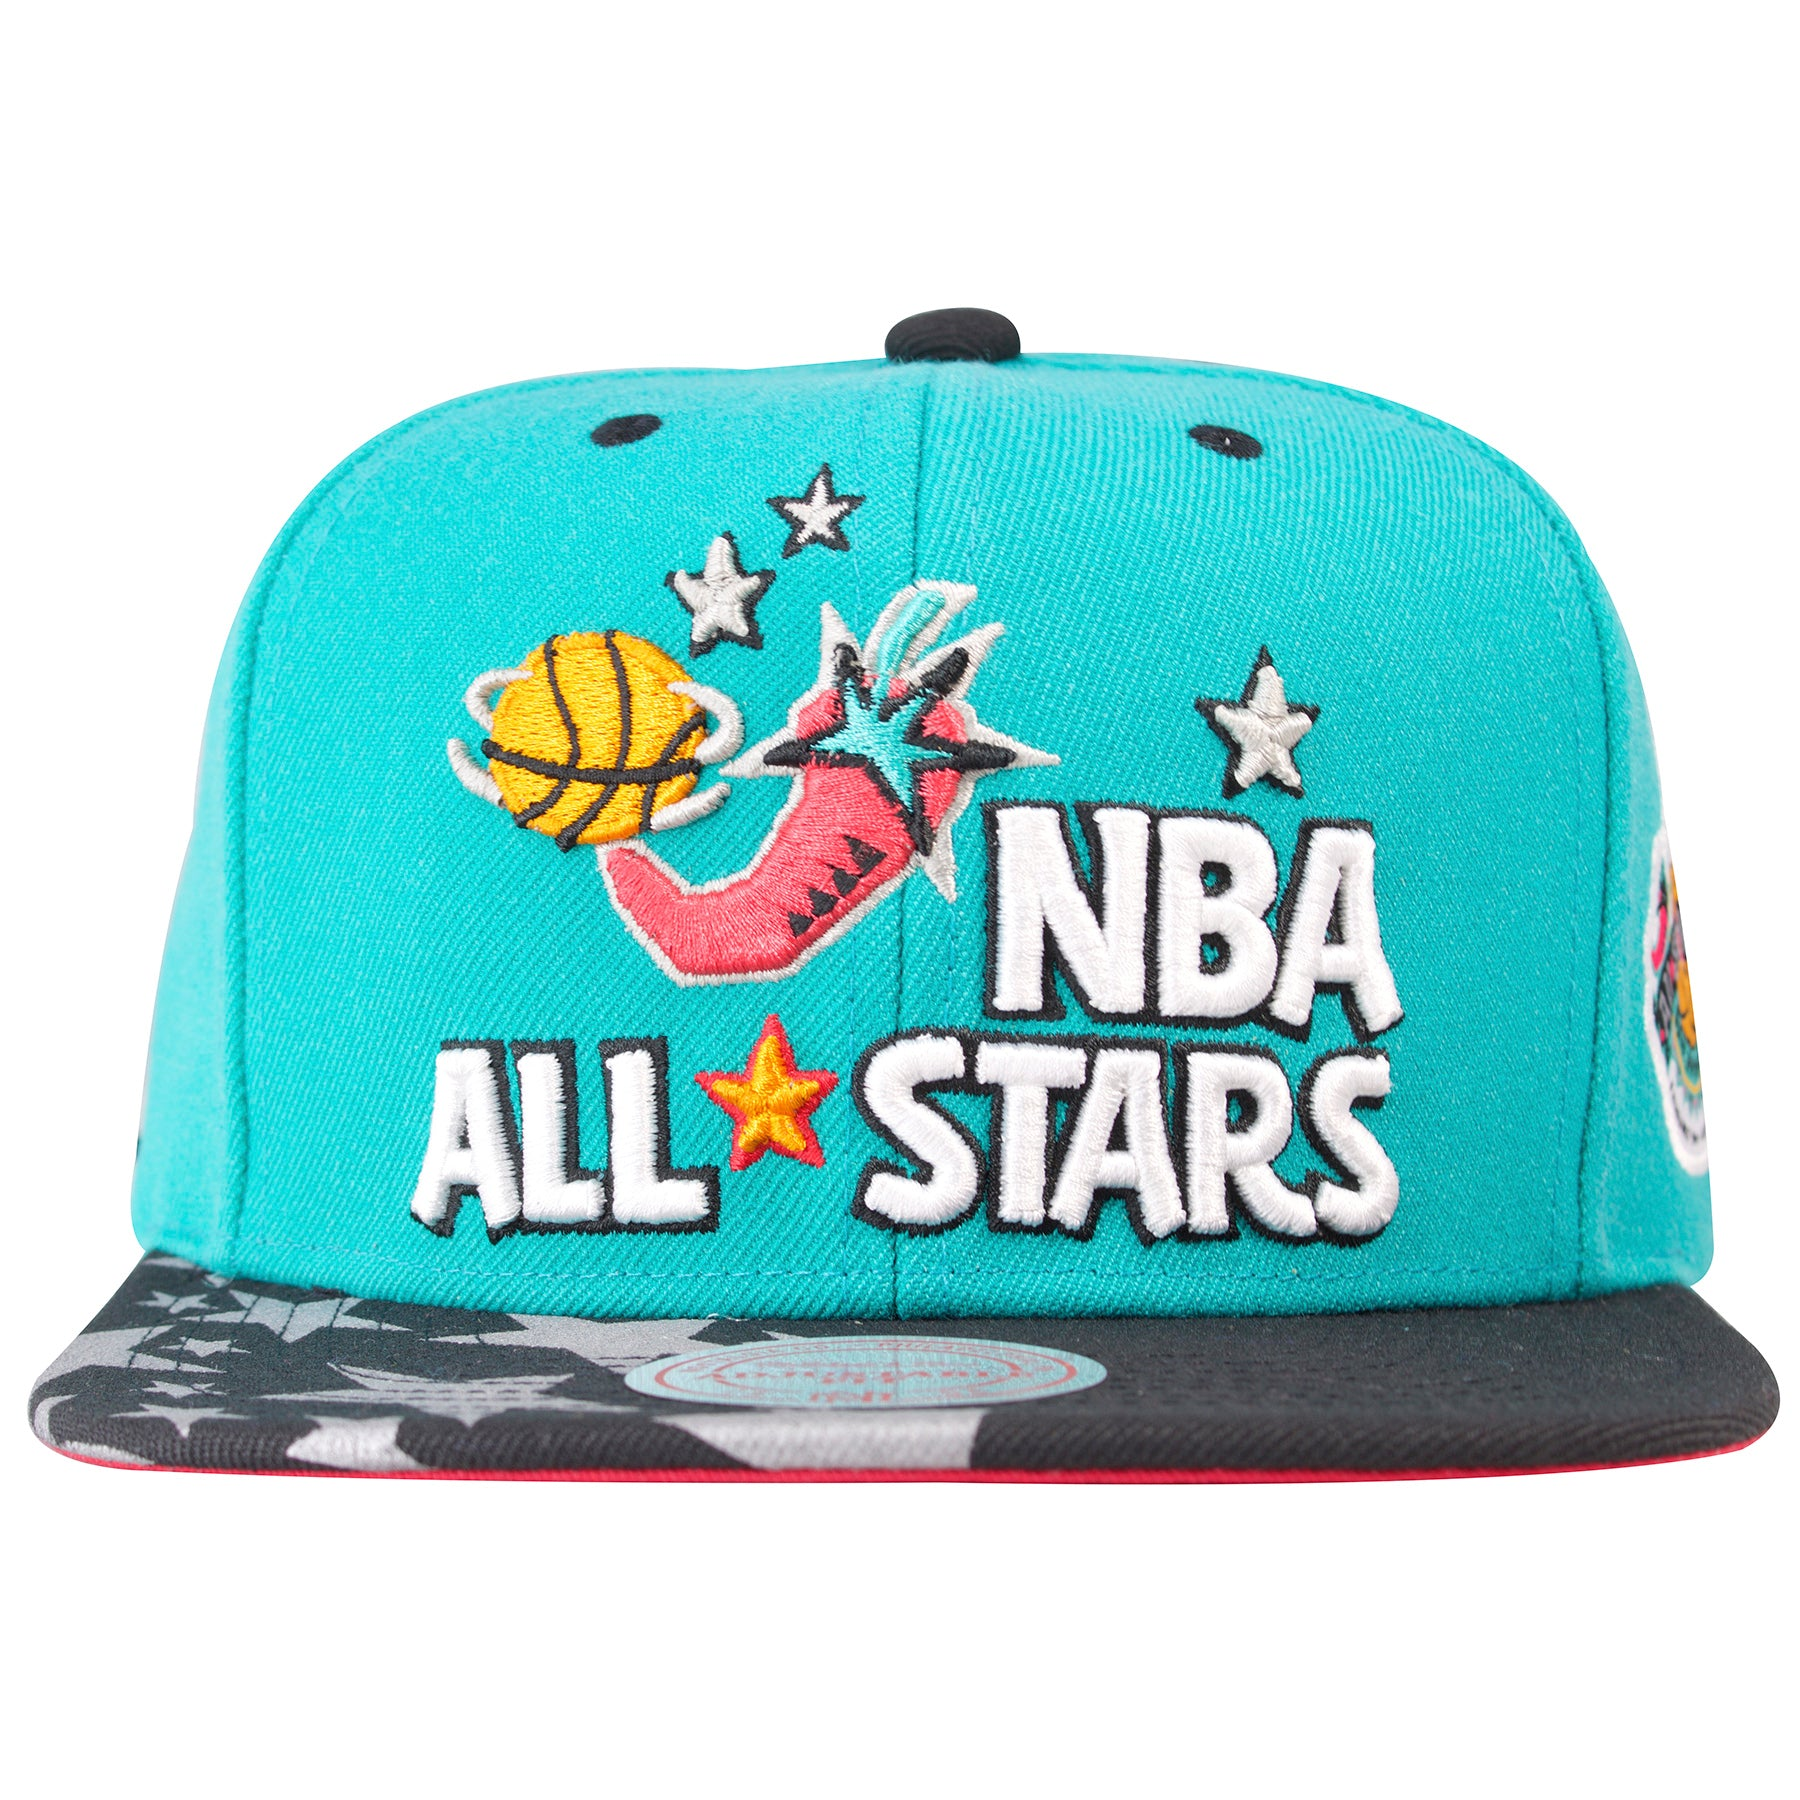 5796889b5b8b05 on the front of the vintage 1996 nba all star game snapback hat is the nba